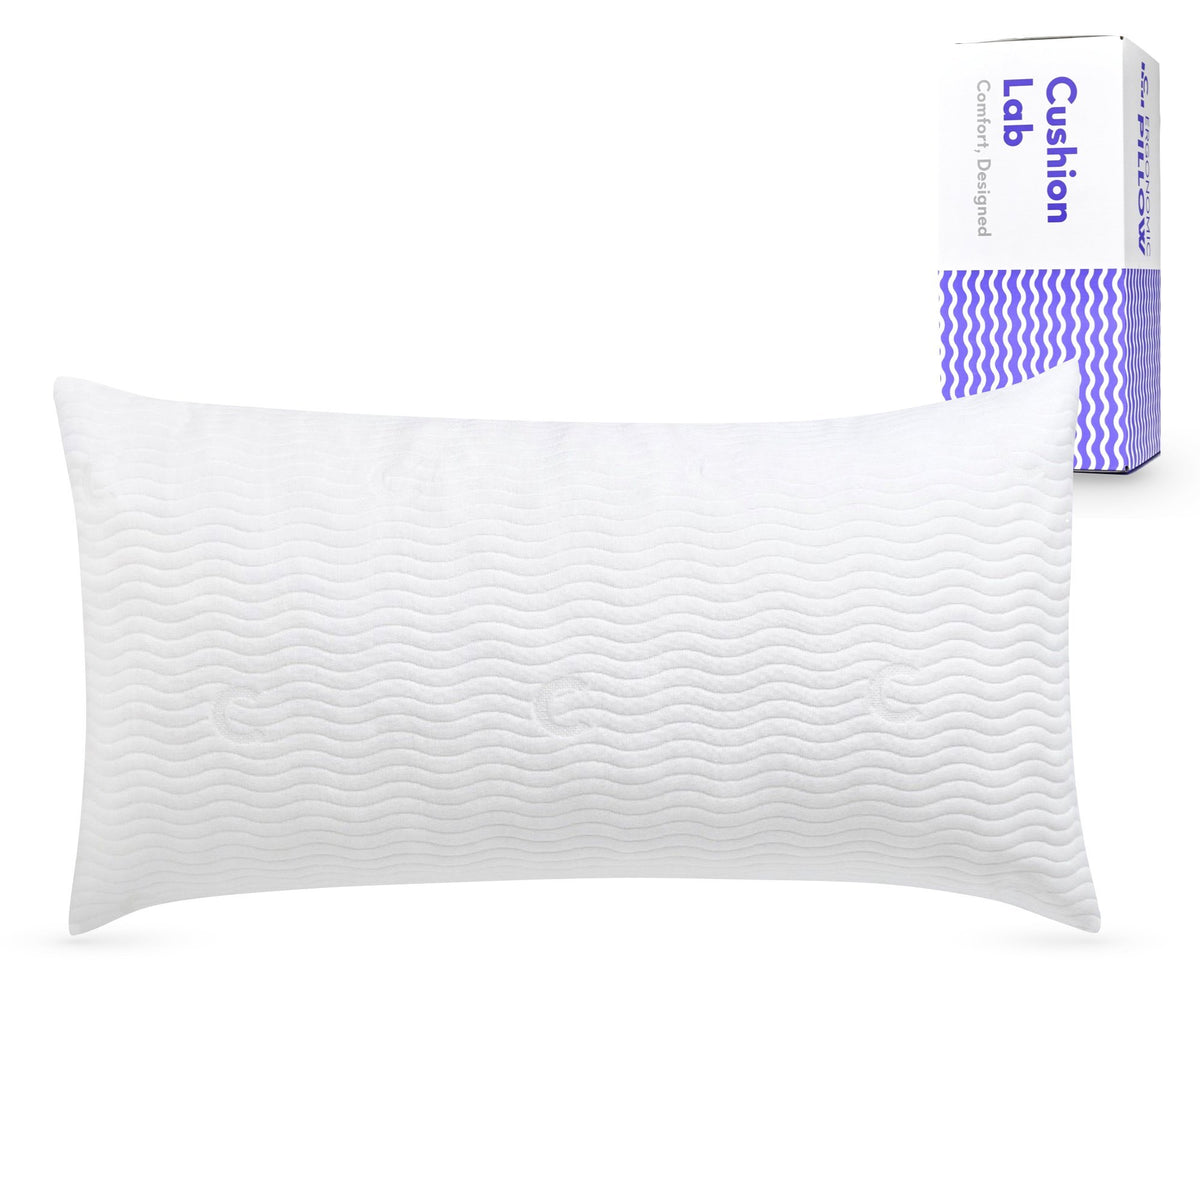 Extra Support Adjustable Shredded Memory Foam Pillow for Back, Stomach, Side Sleeper - Sleep Comfort & Neck Support Bamboo Pillow, Oeko-Tex Hypoallergenic Cover, CertiPUR US, King Size